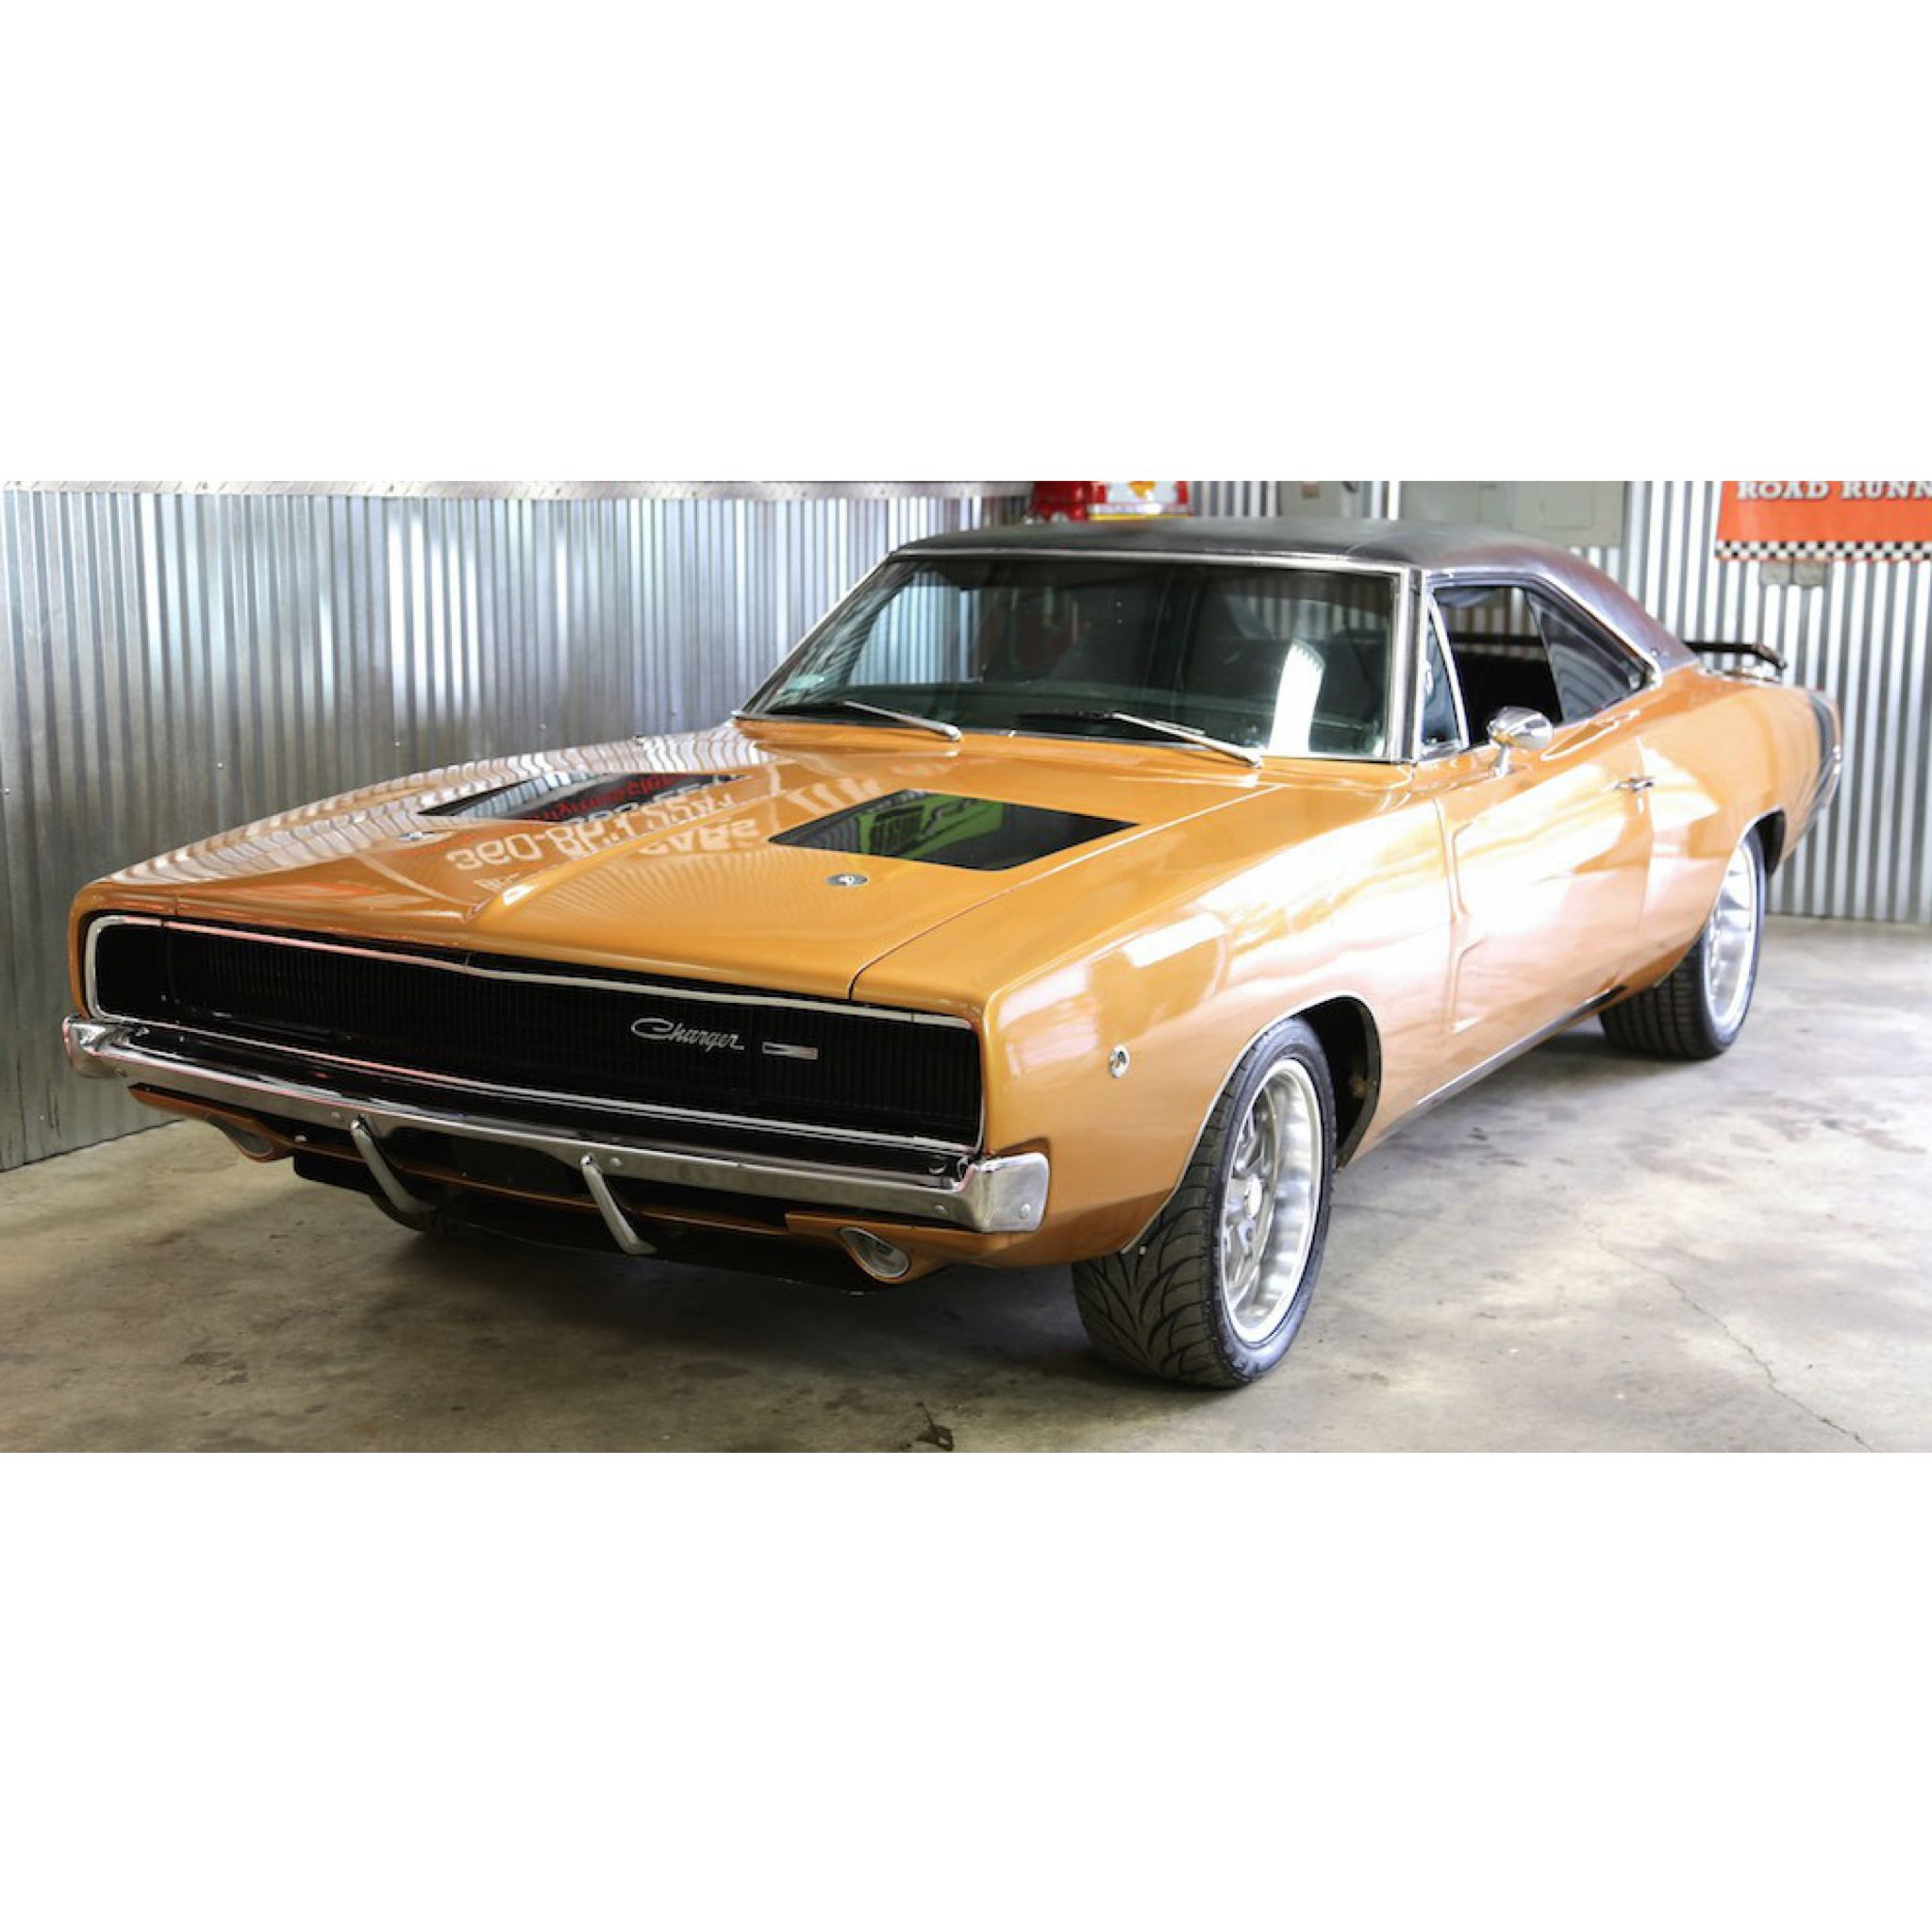 1968 Dodge Charger For Sale Solid Example With Original Panels Factory Bucket Seats Strong Running 383 4 Dodge Charger For Sale Sell Car 1968 Dodge Charger